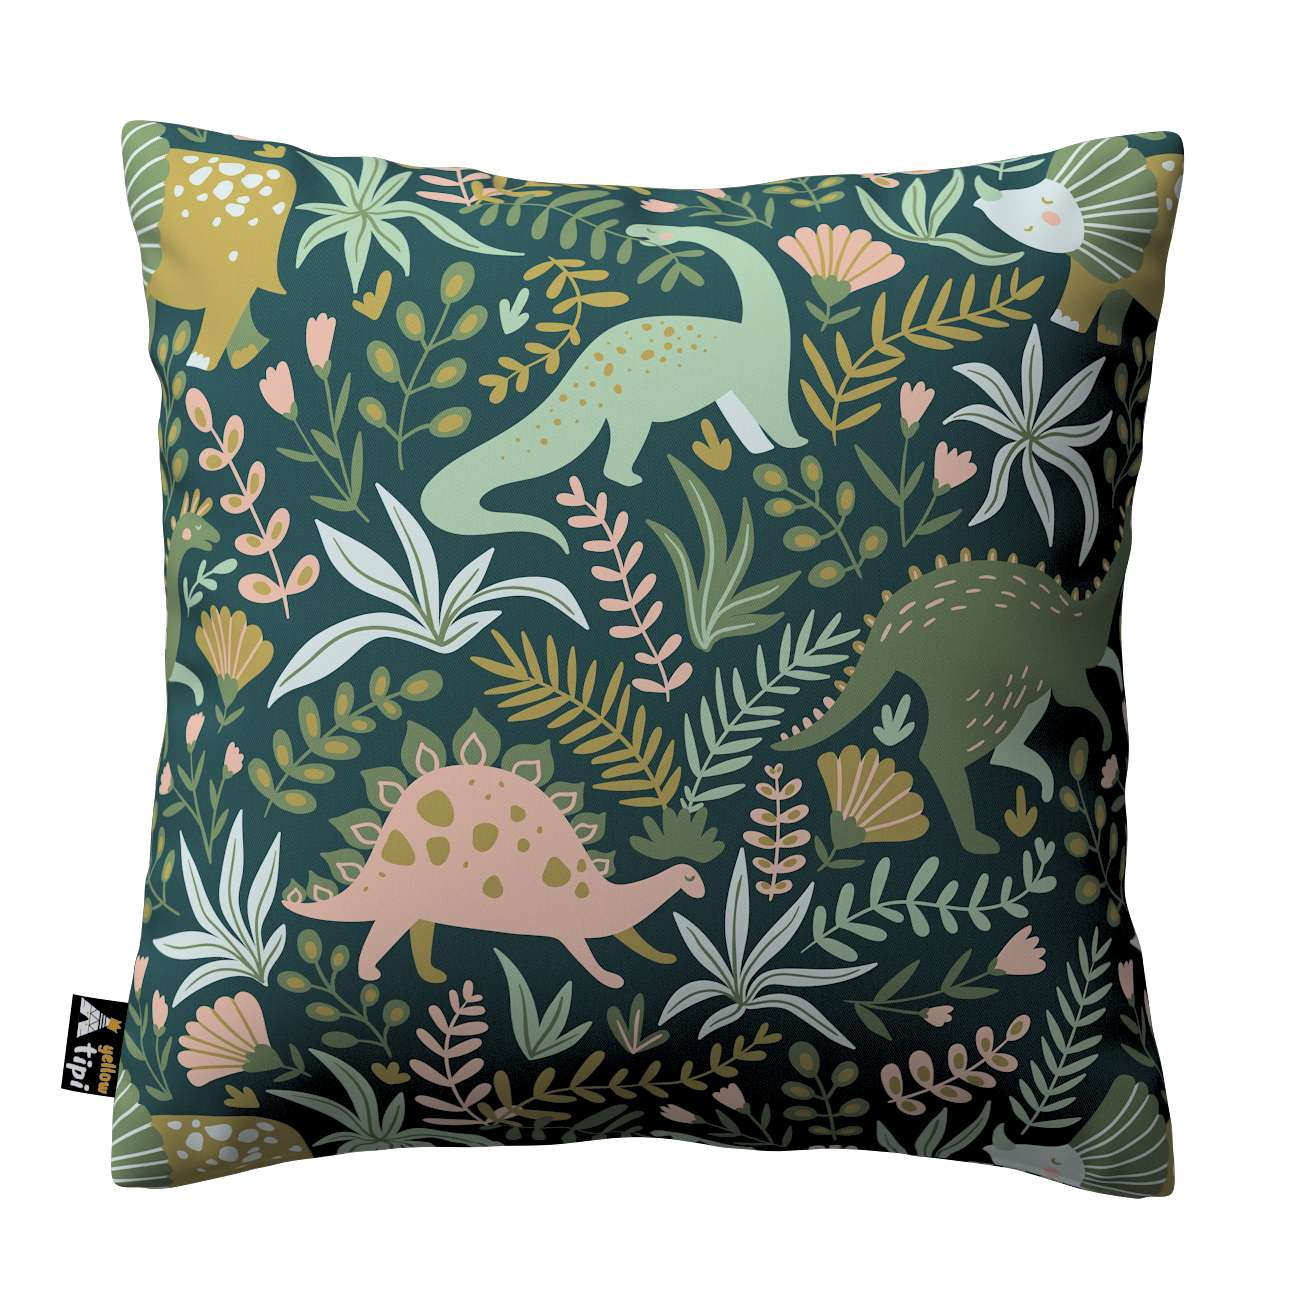 Milly cushion cover in collection Magic Collection, fabric: 500-20